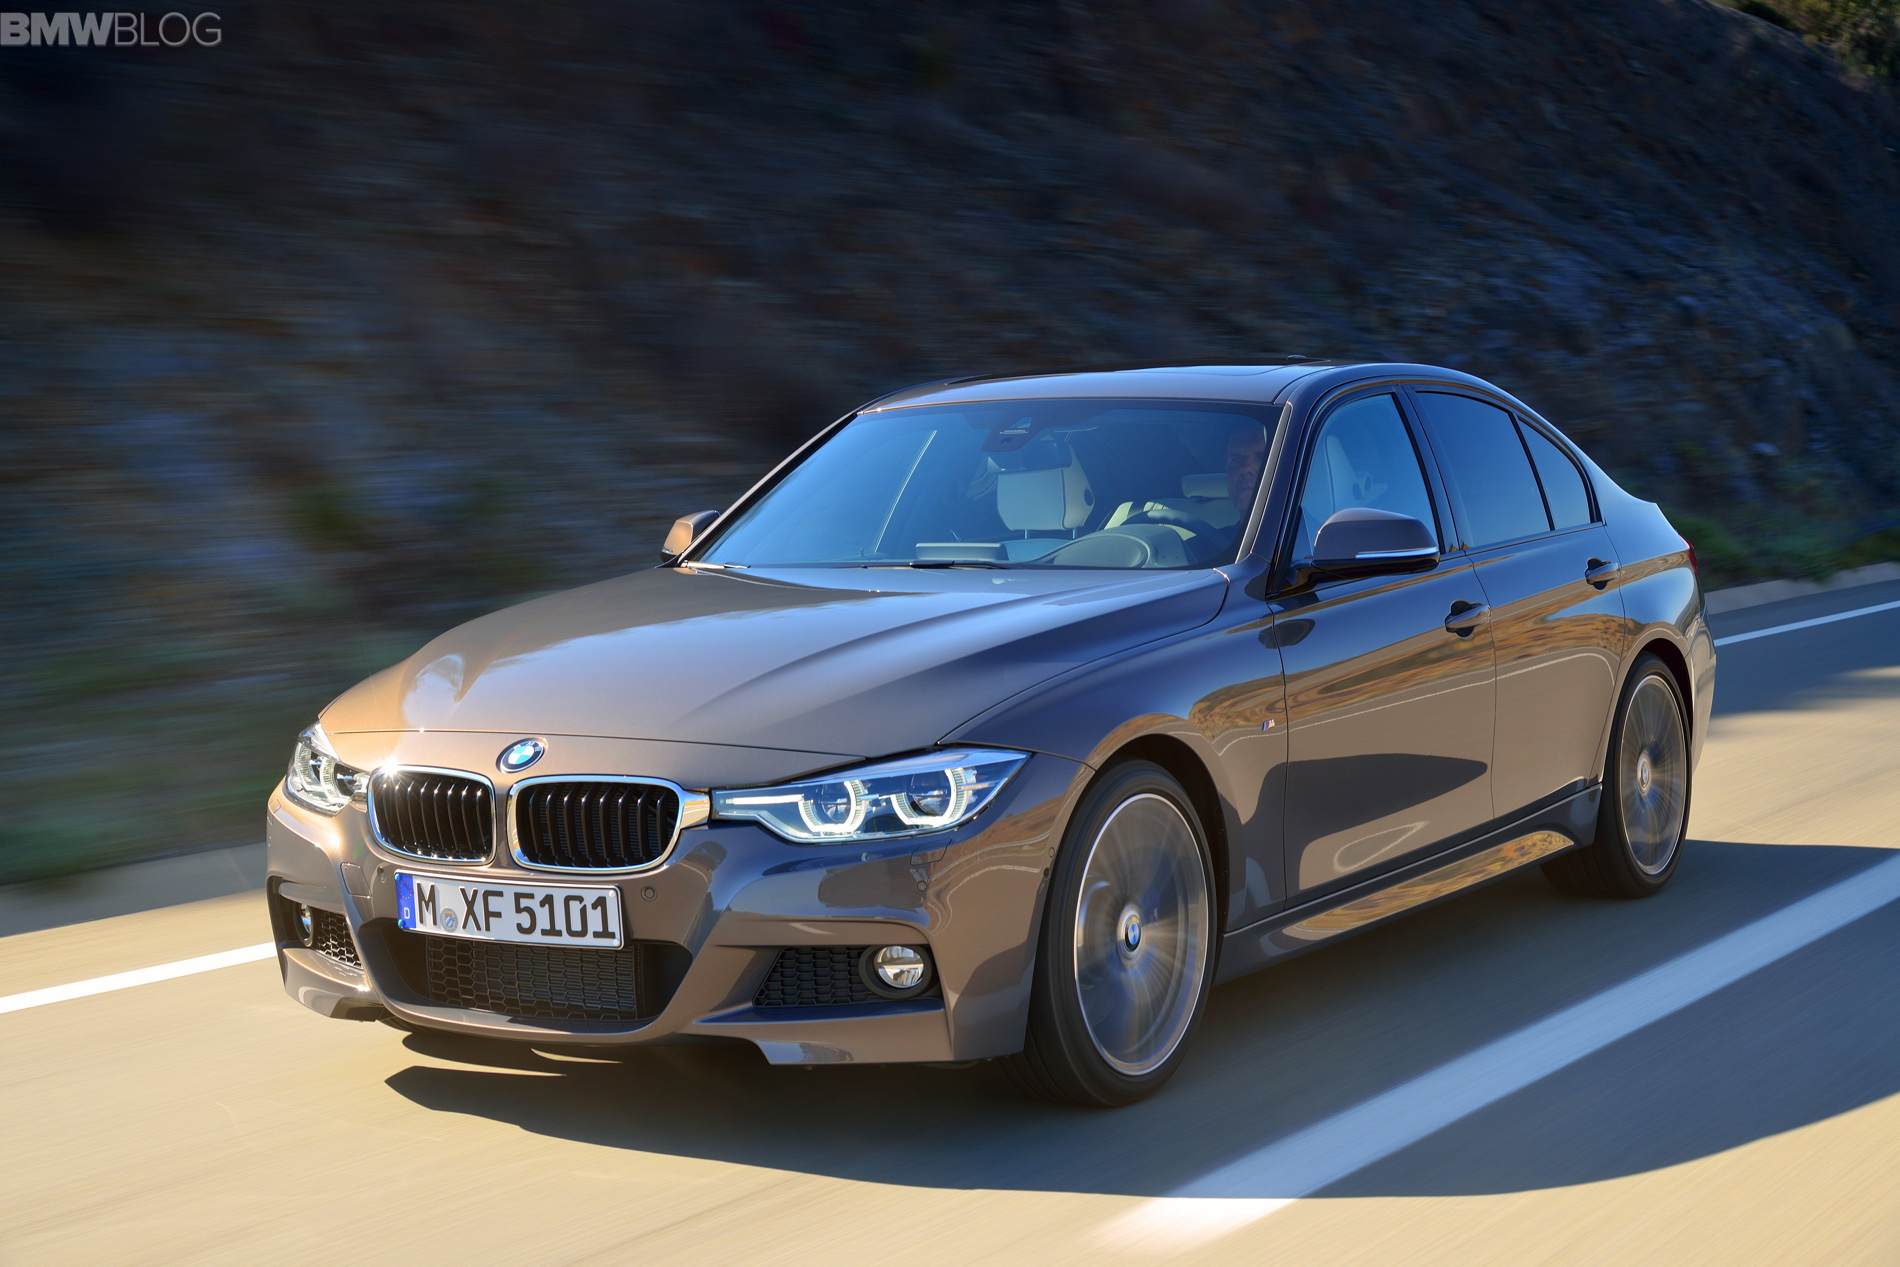 2015 BMW 3 Series Facelift - Exterior and Interior Changes